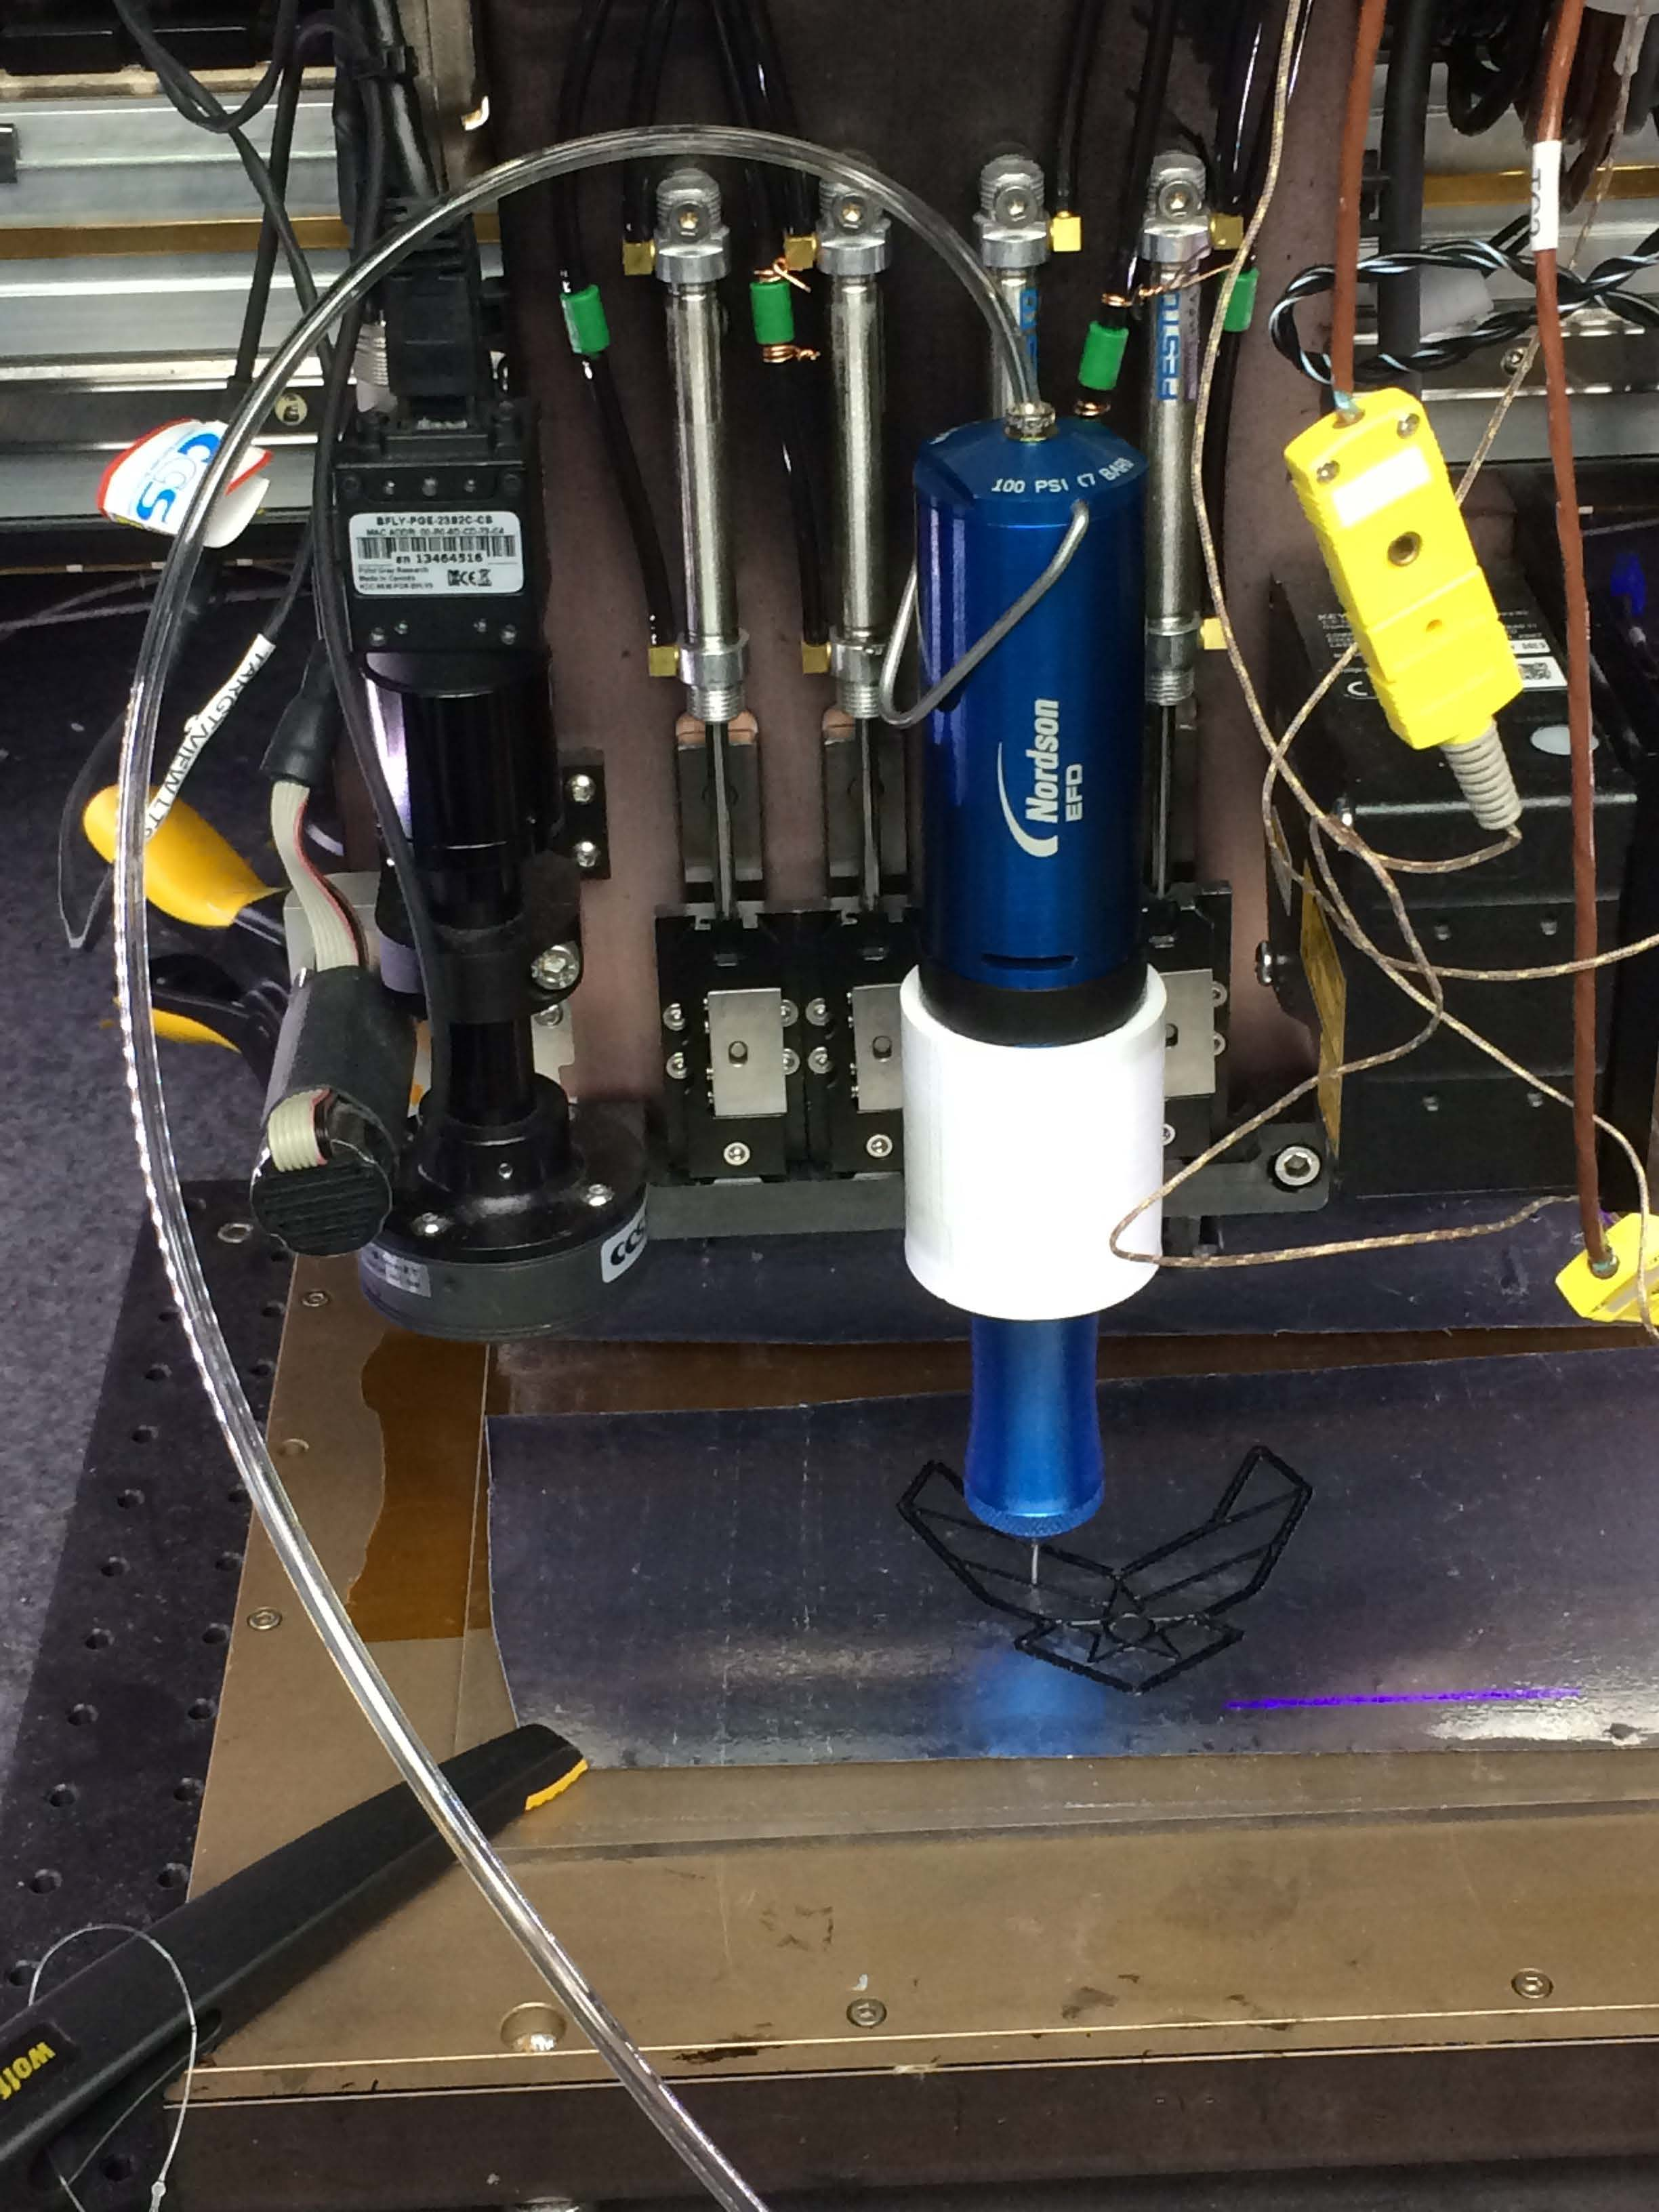 Direct ink printing is performed with a 3D printer using epoxy with chopped fiber. The pressure pump provides pressure to force the resin through the nozzle. Photo via Donna Lindner/AFRL.